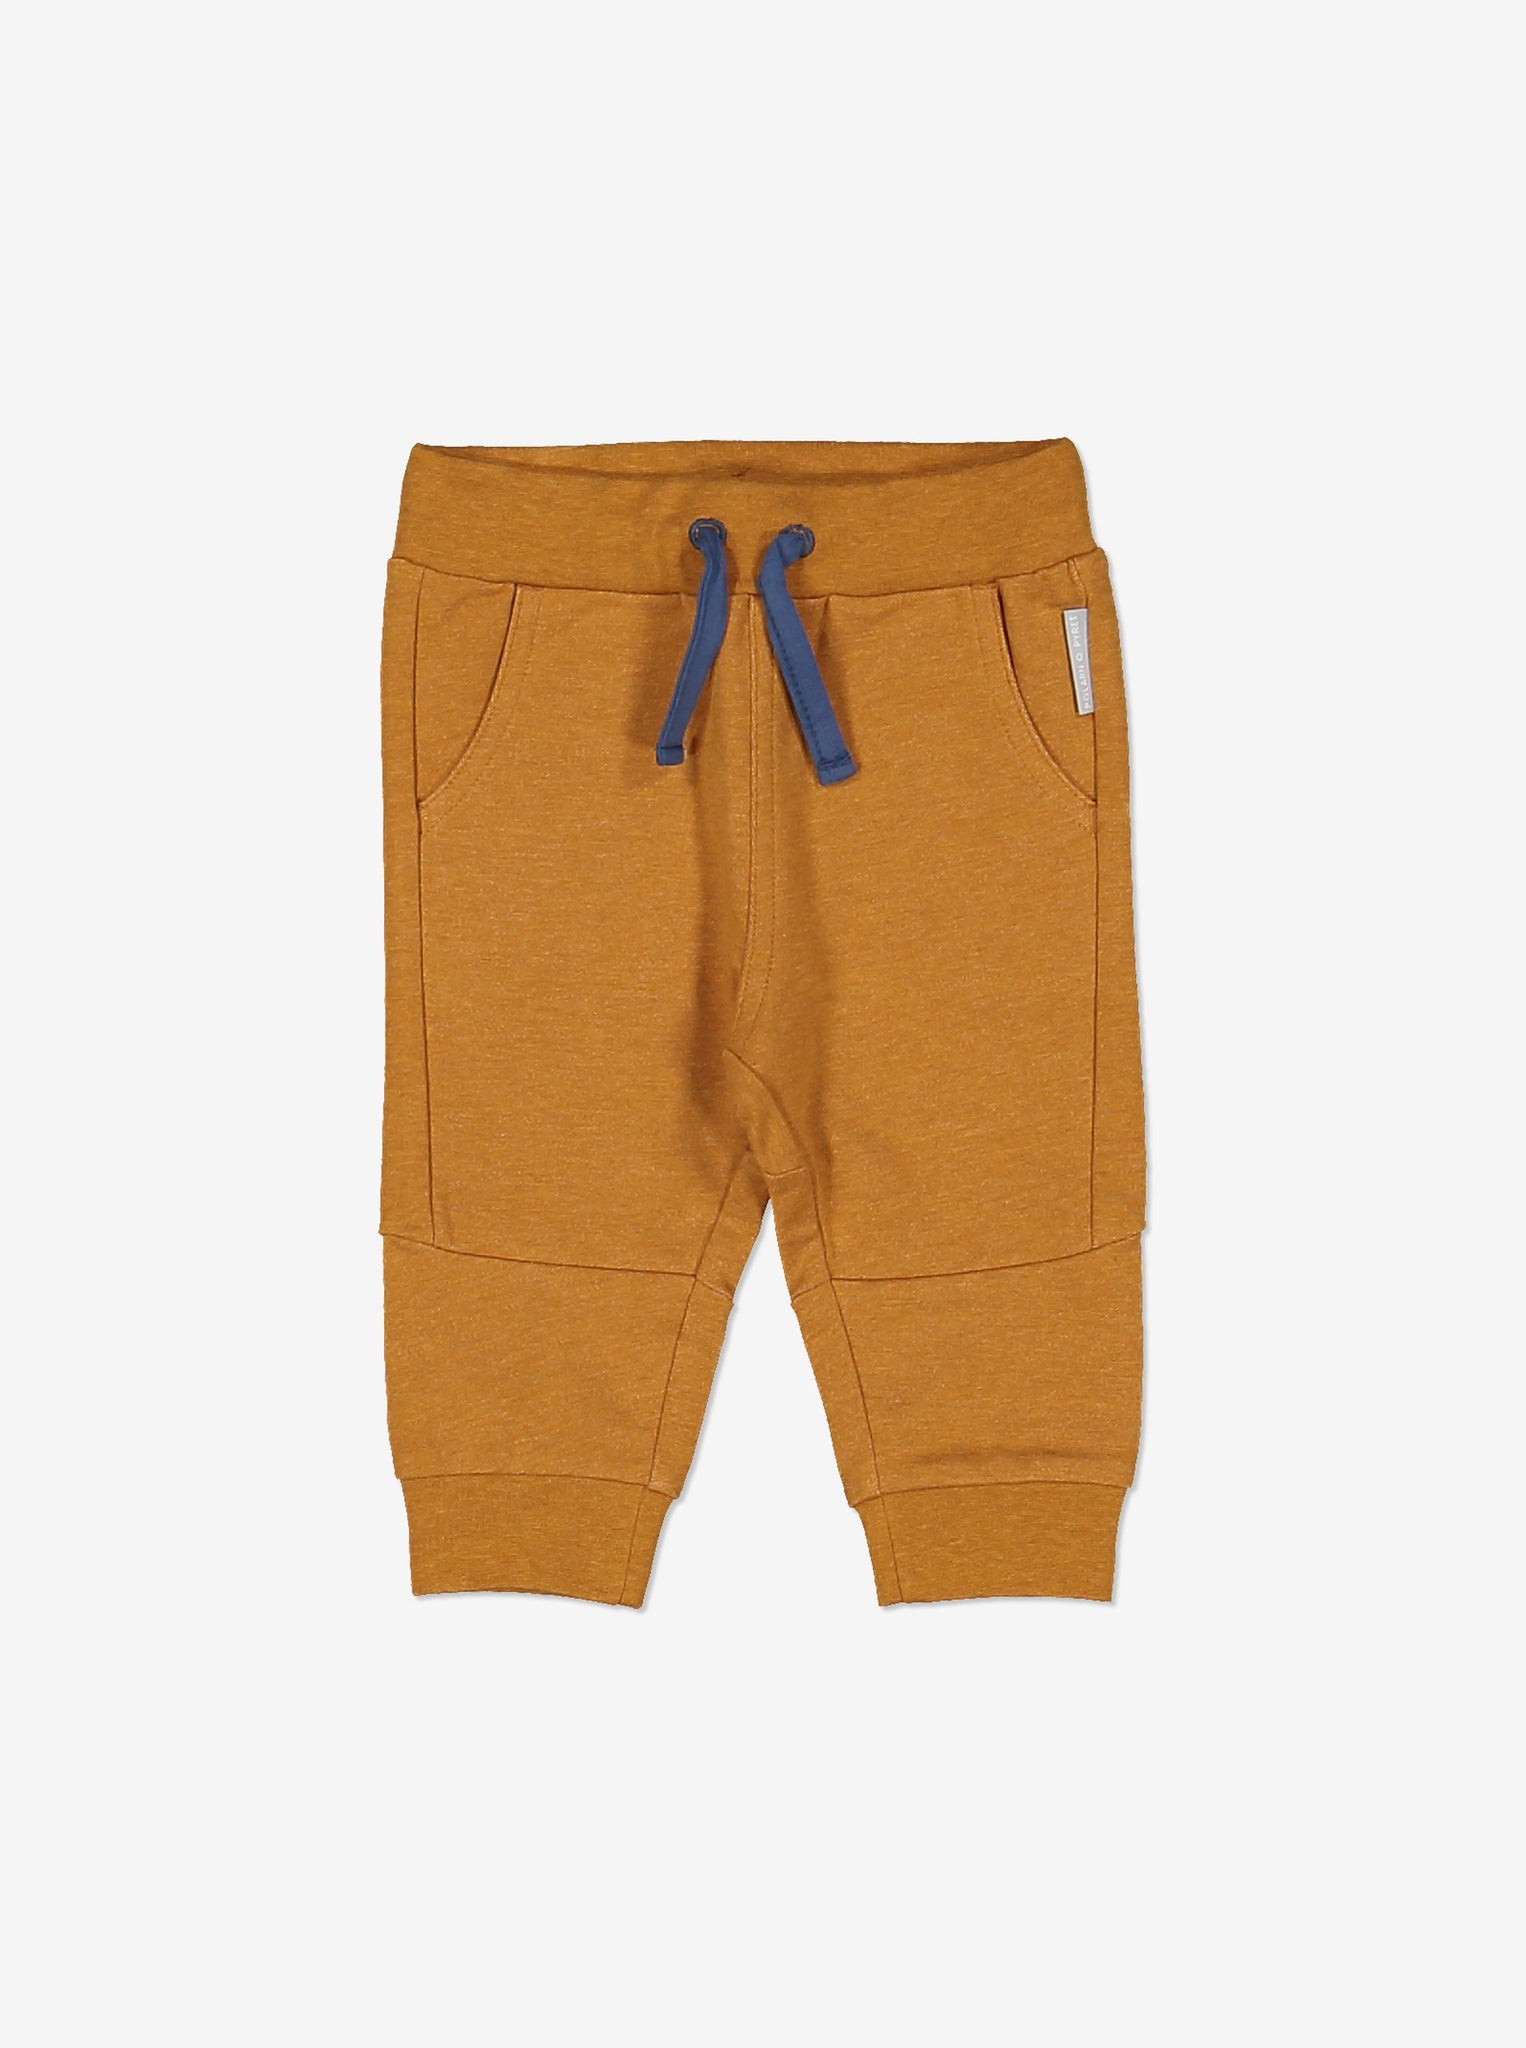 Soft brown baby trousers in soft GOTS organic cotton.  With contrast draw sting waist, two front pockets and ribbed cuffs to keep them in place.